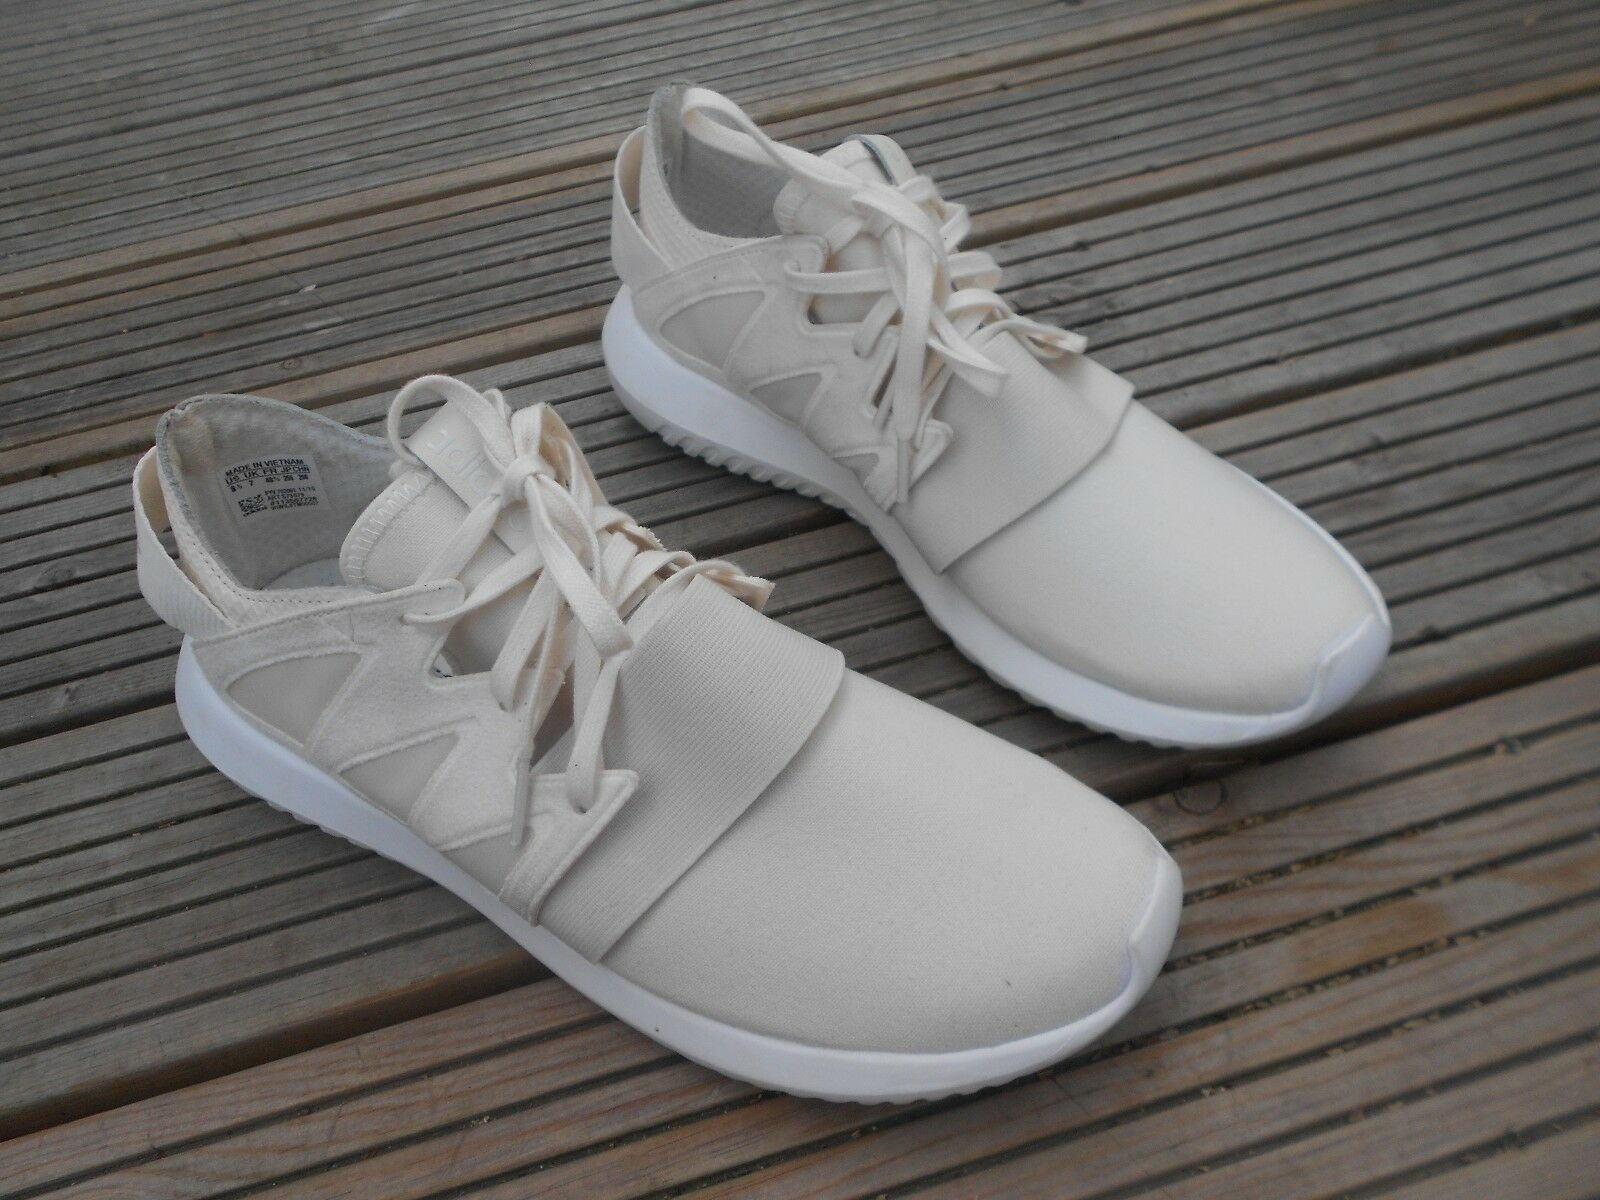 new arrivals c8bc6 264d9 WOMENS ADIDAS TUBULAR VIRAL W SZ - IN A GOOD CONDITION TRAINERS- 7 ...